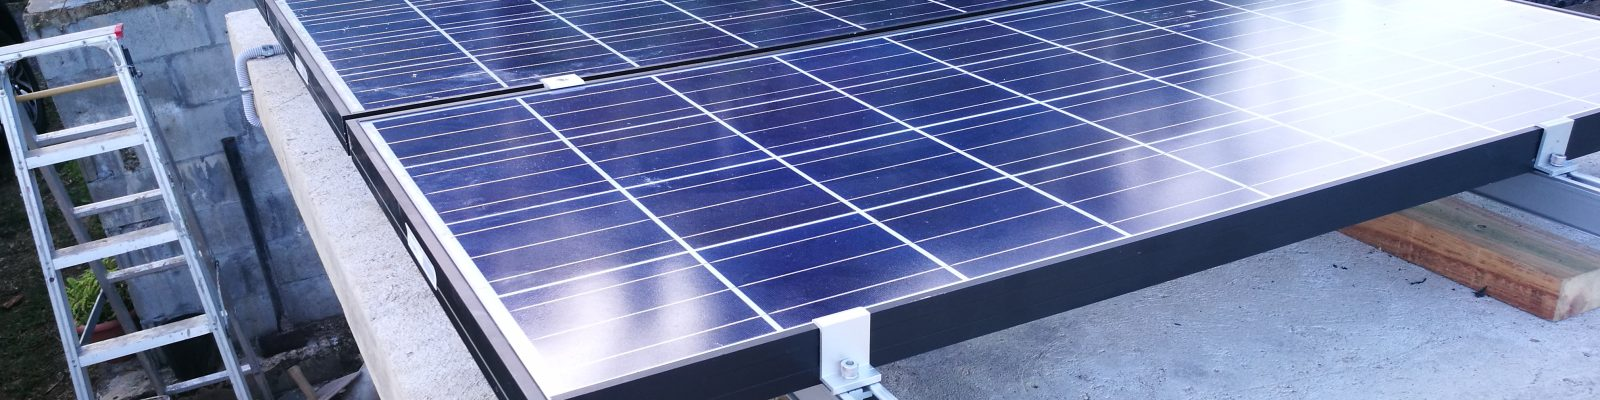 Solar System Completed at Tailevu